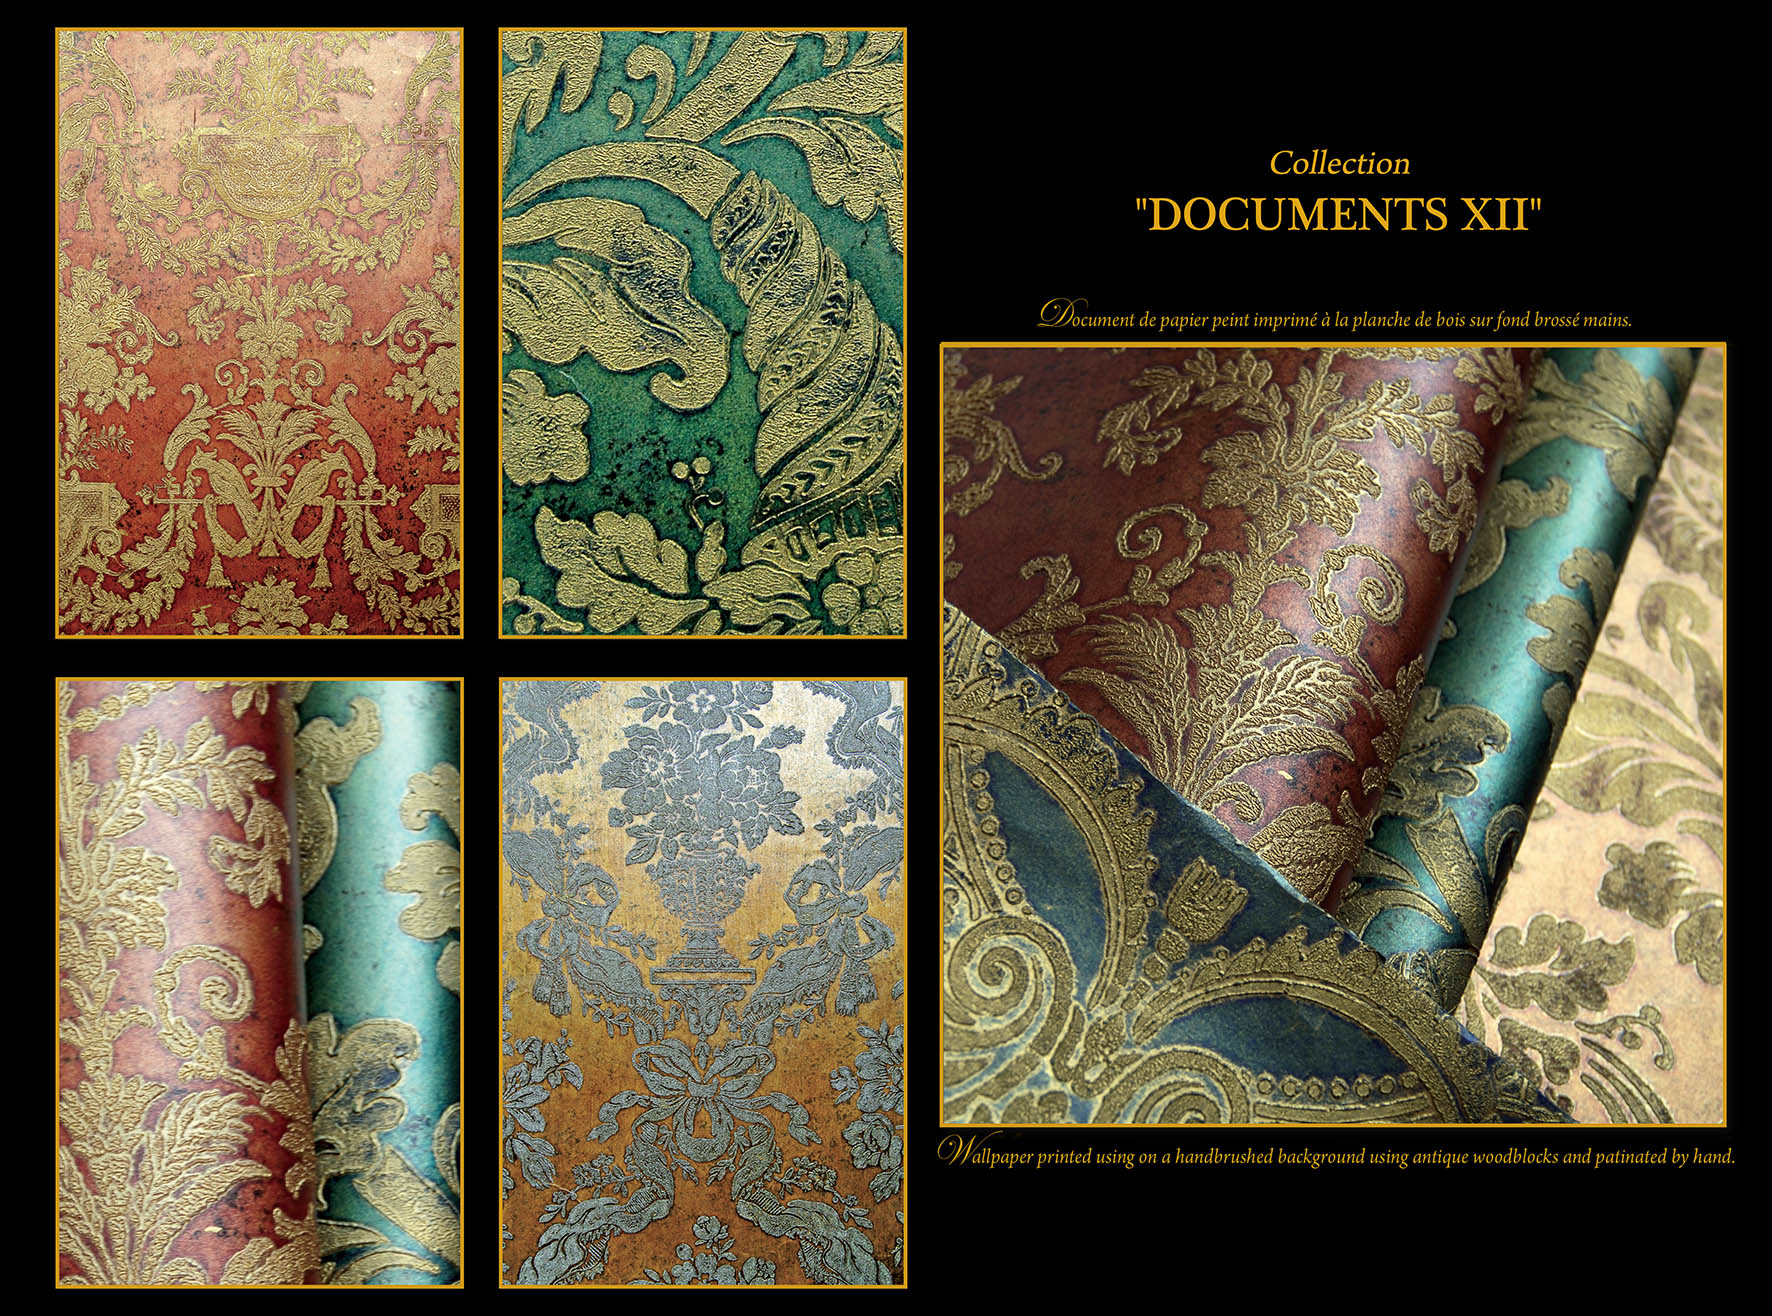 Documents XII